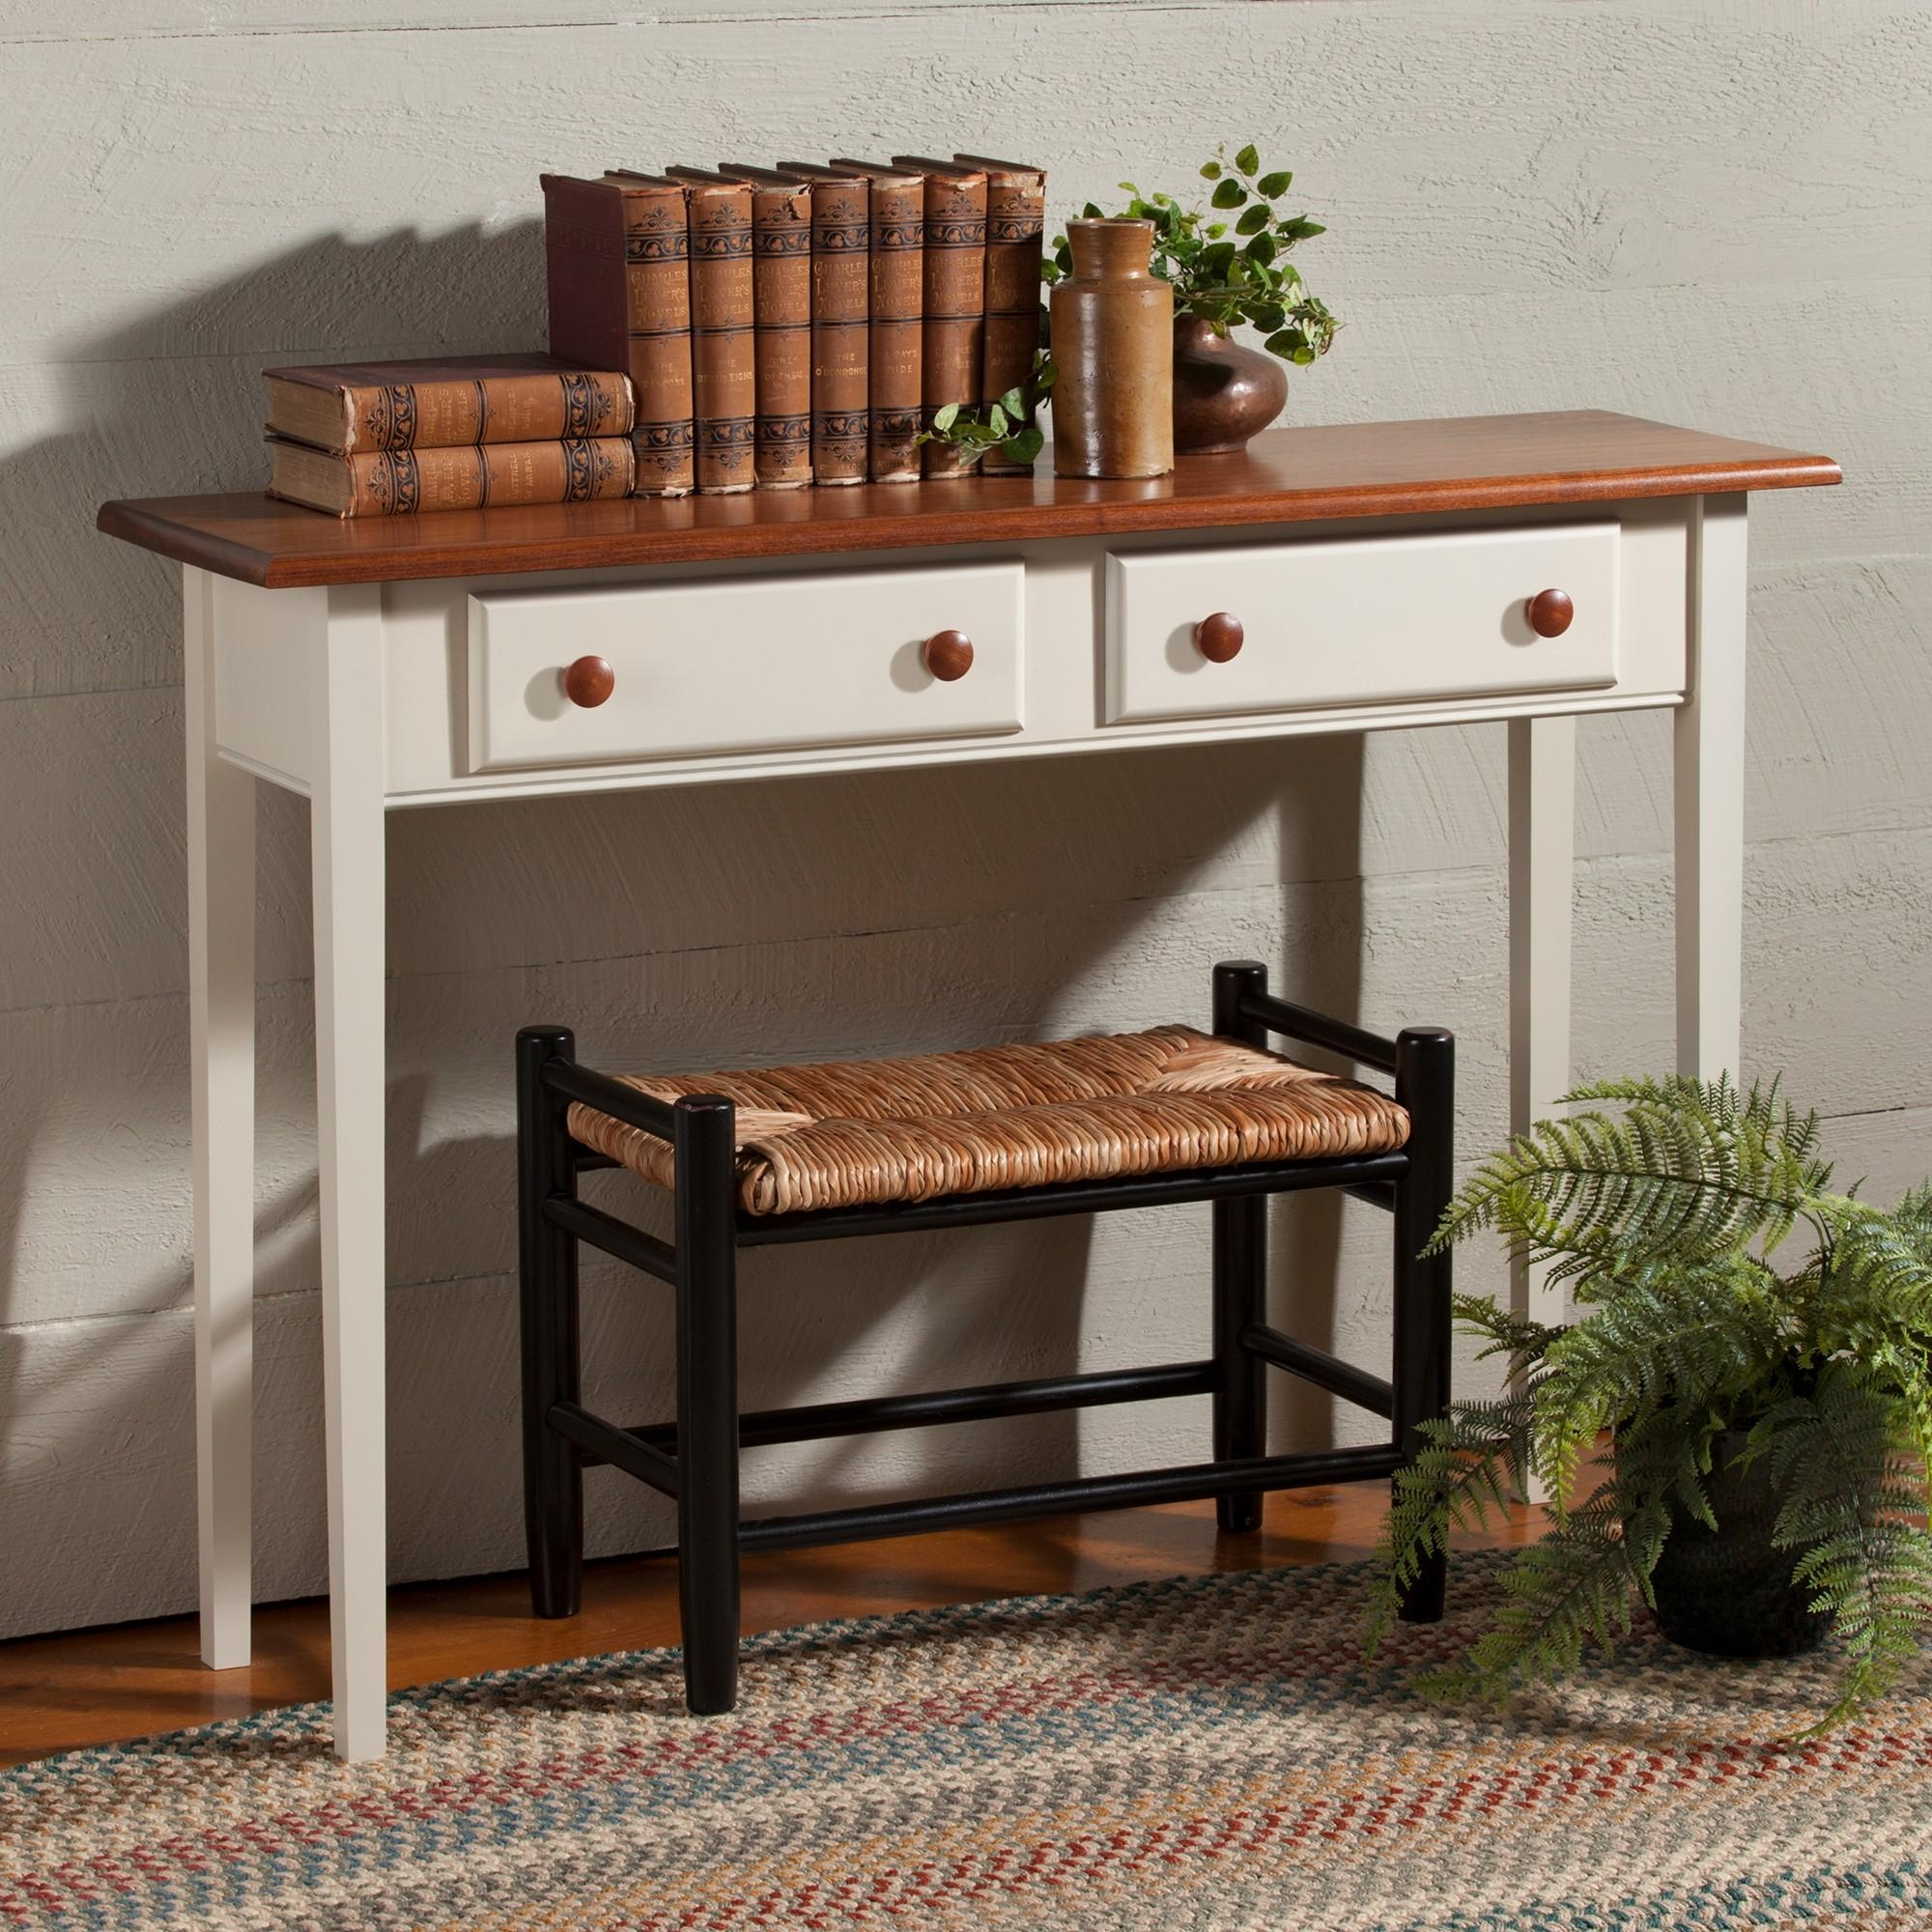 Country Shaker Sofa Hall Table | Sturbridge Yankee Workshop Pertaining To Country Sofa Tables (View 4 of 20)